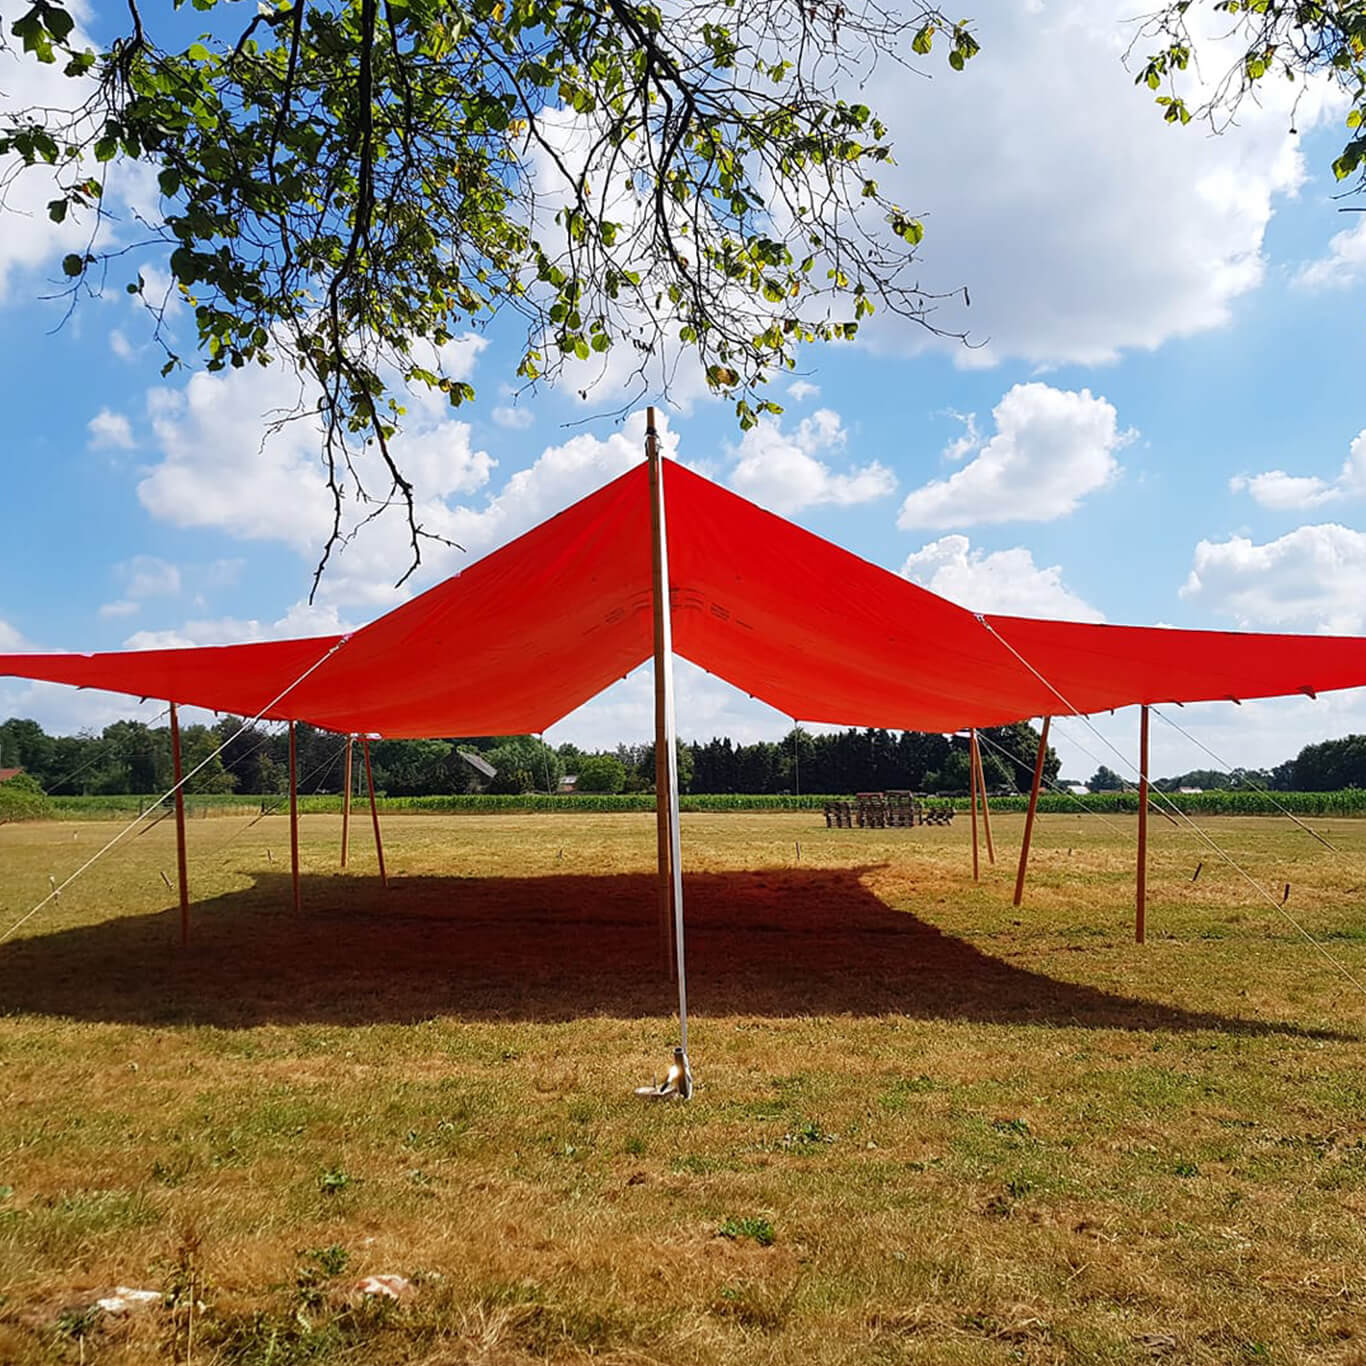 house party Materiaal huren strakke tent